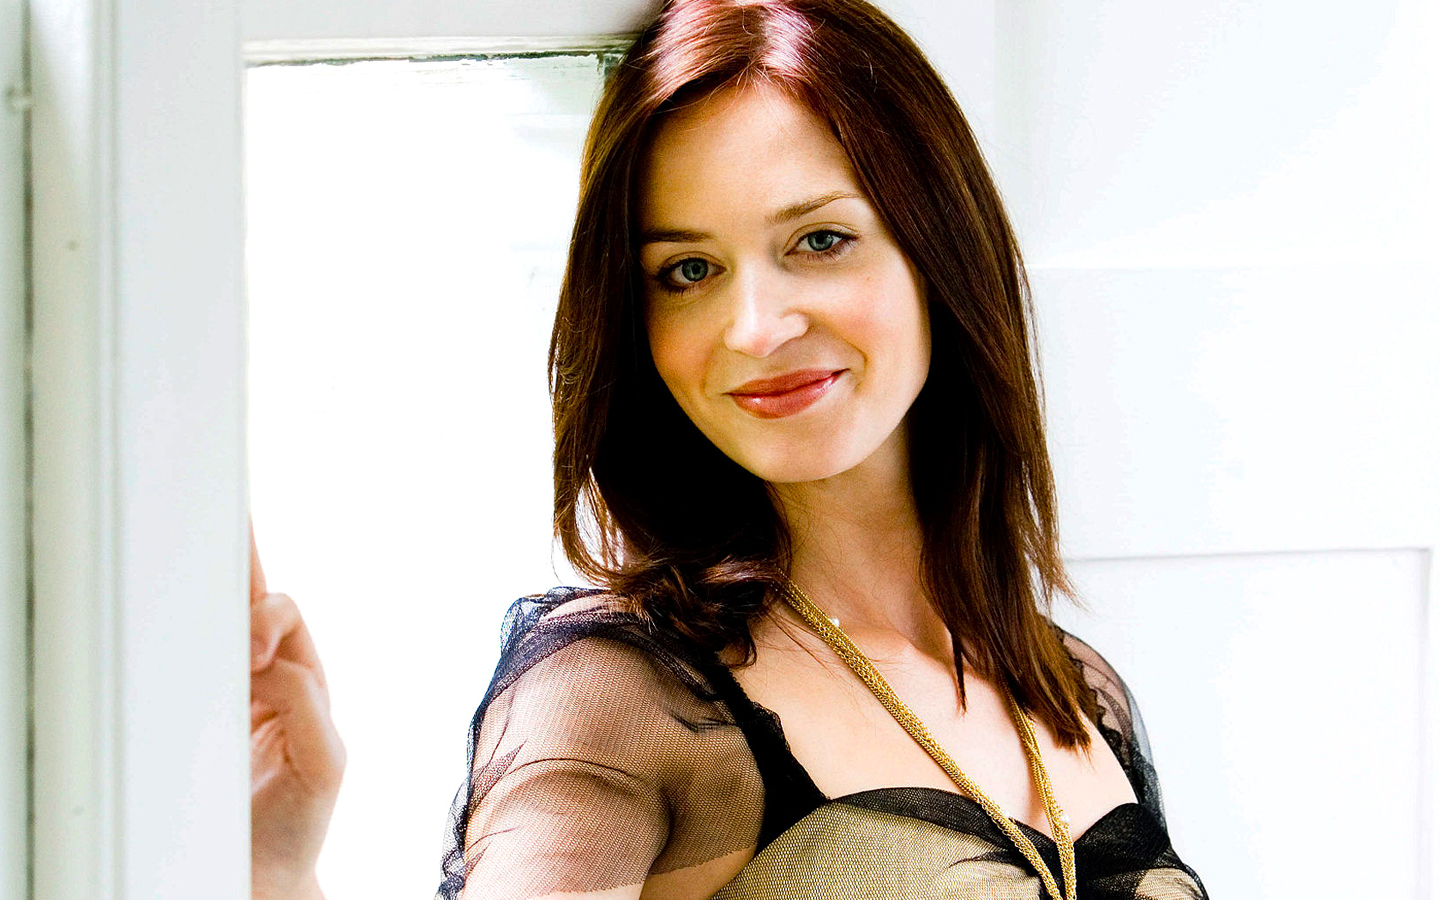 emily blunt hot hd wallpapers high resolution pictures